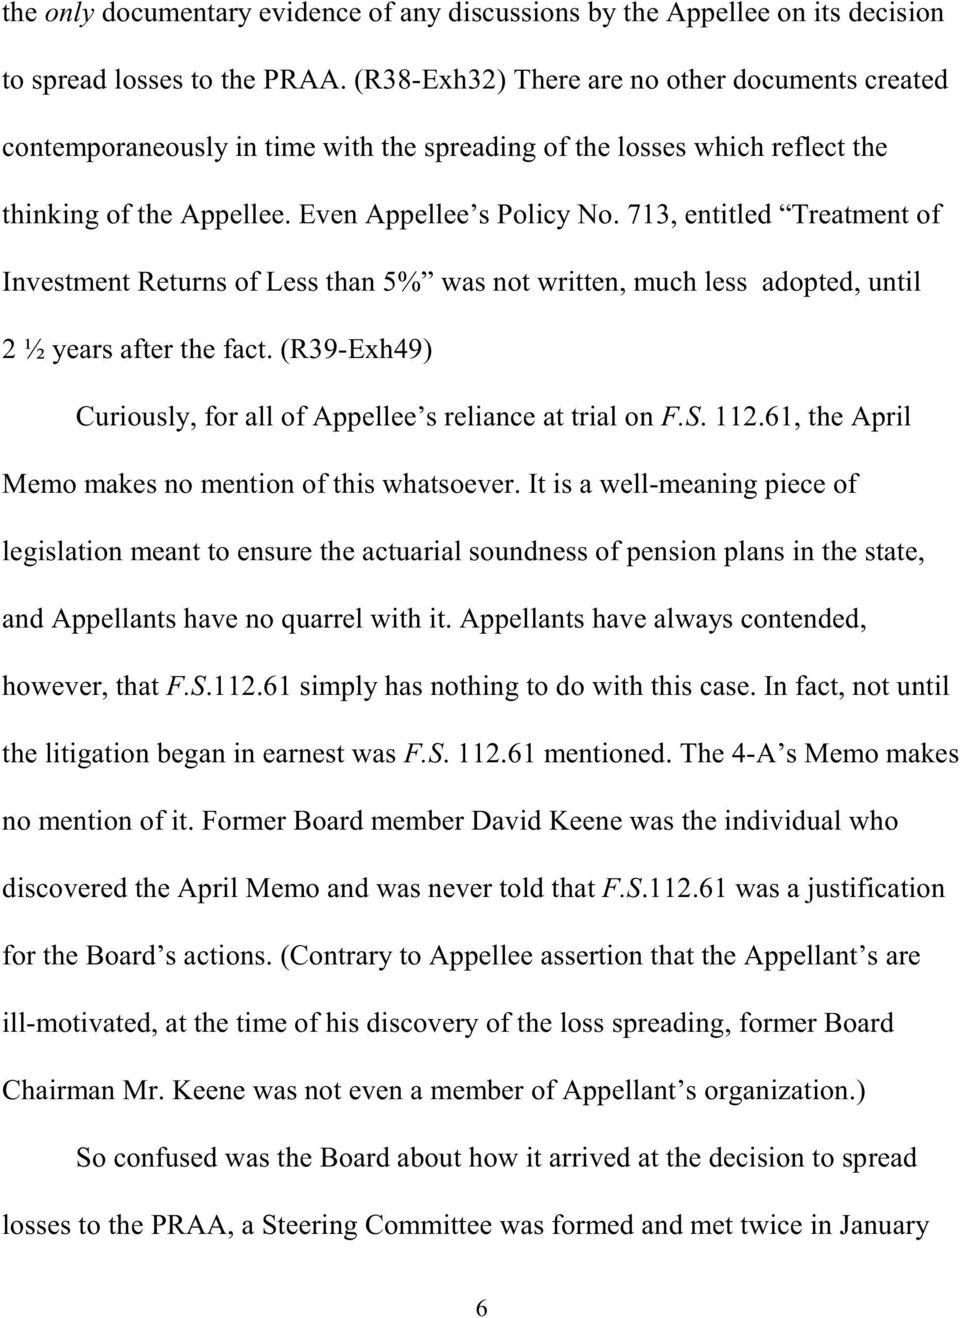 713, entitled Treatment of Investment Returns of Less than 5% was not written, much less adopted, until 2 ½ years after the fact. (R39-Exh49) Curiously, for all of Appellee s reliance at trial on F.S.